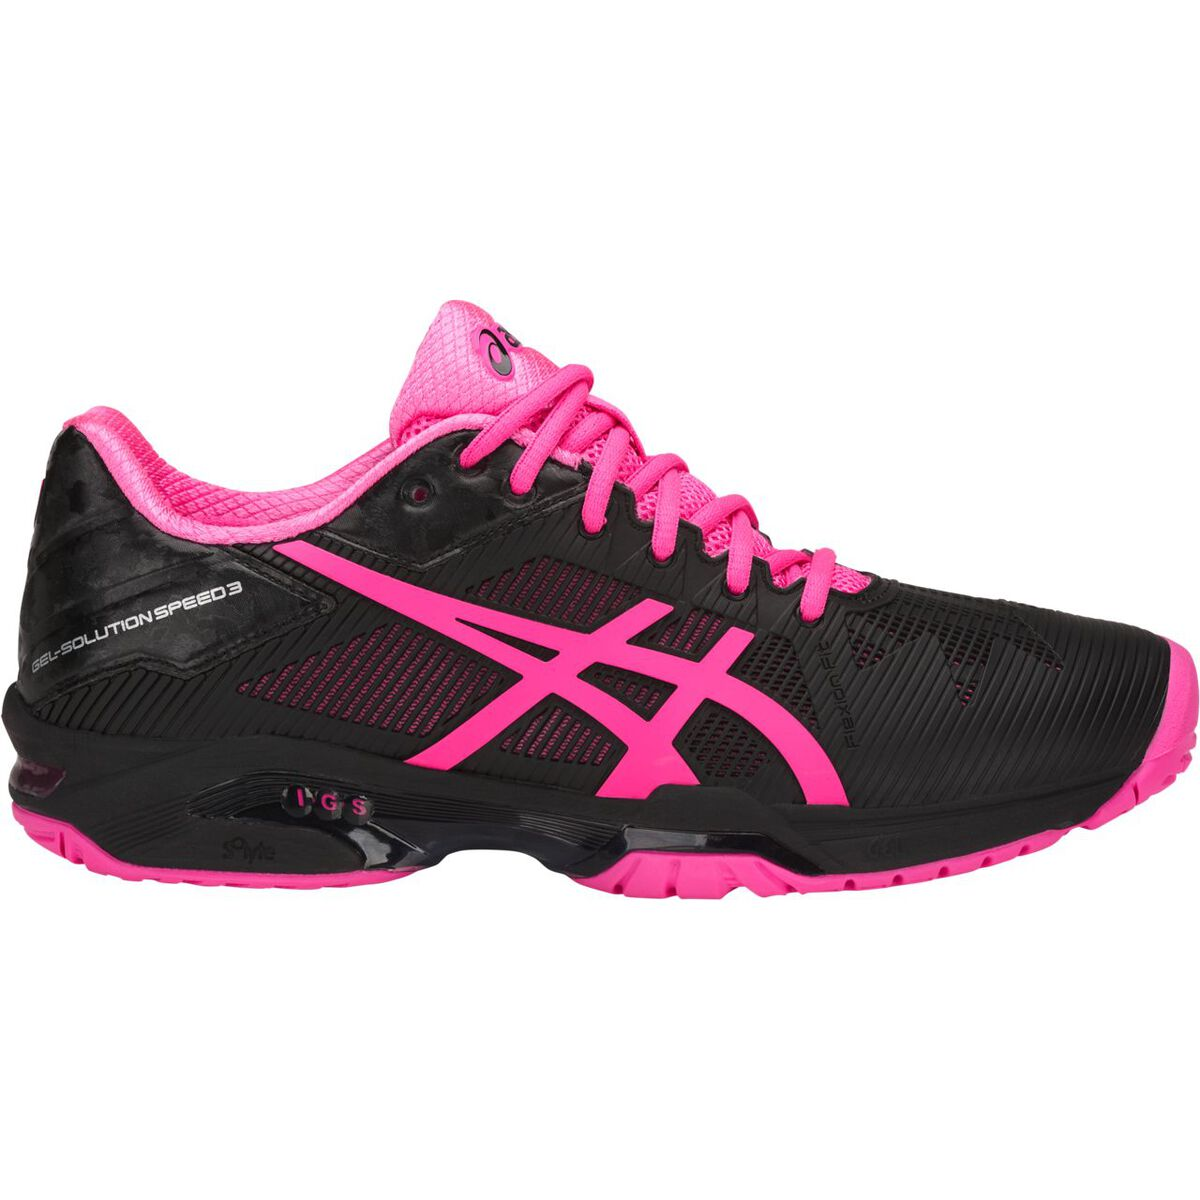 6763809b Asics GEL-Solution Speed 3 Women's Tennis Shoe - Black/Pink